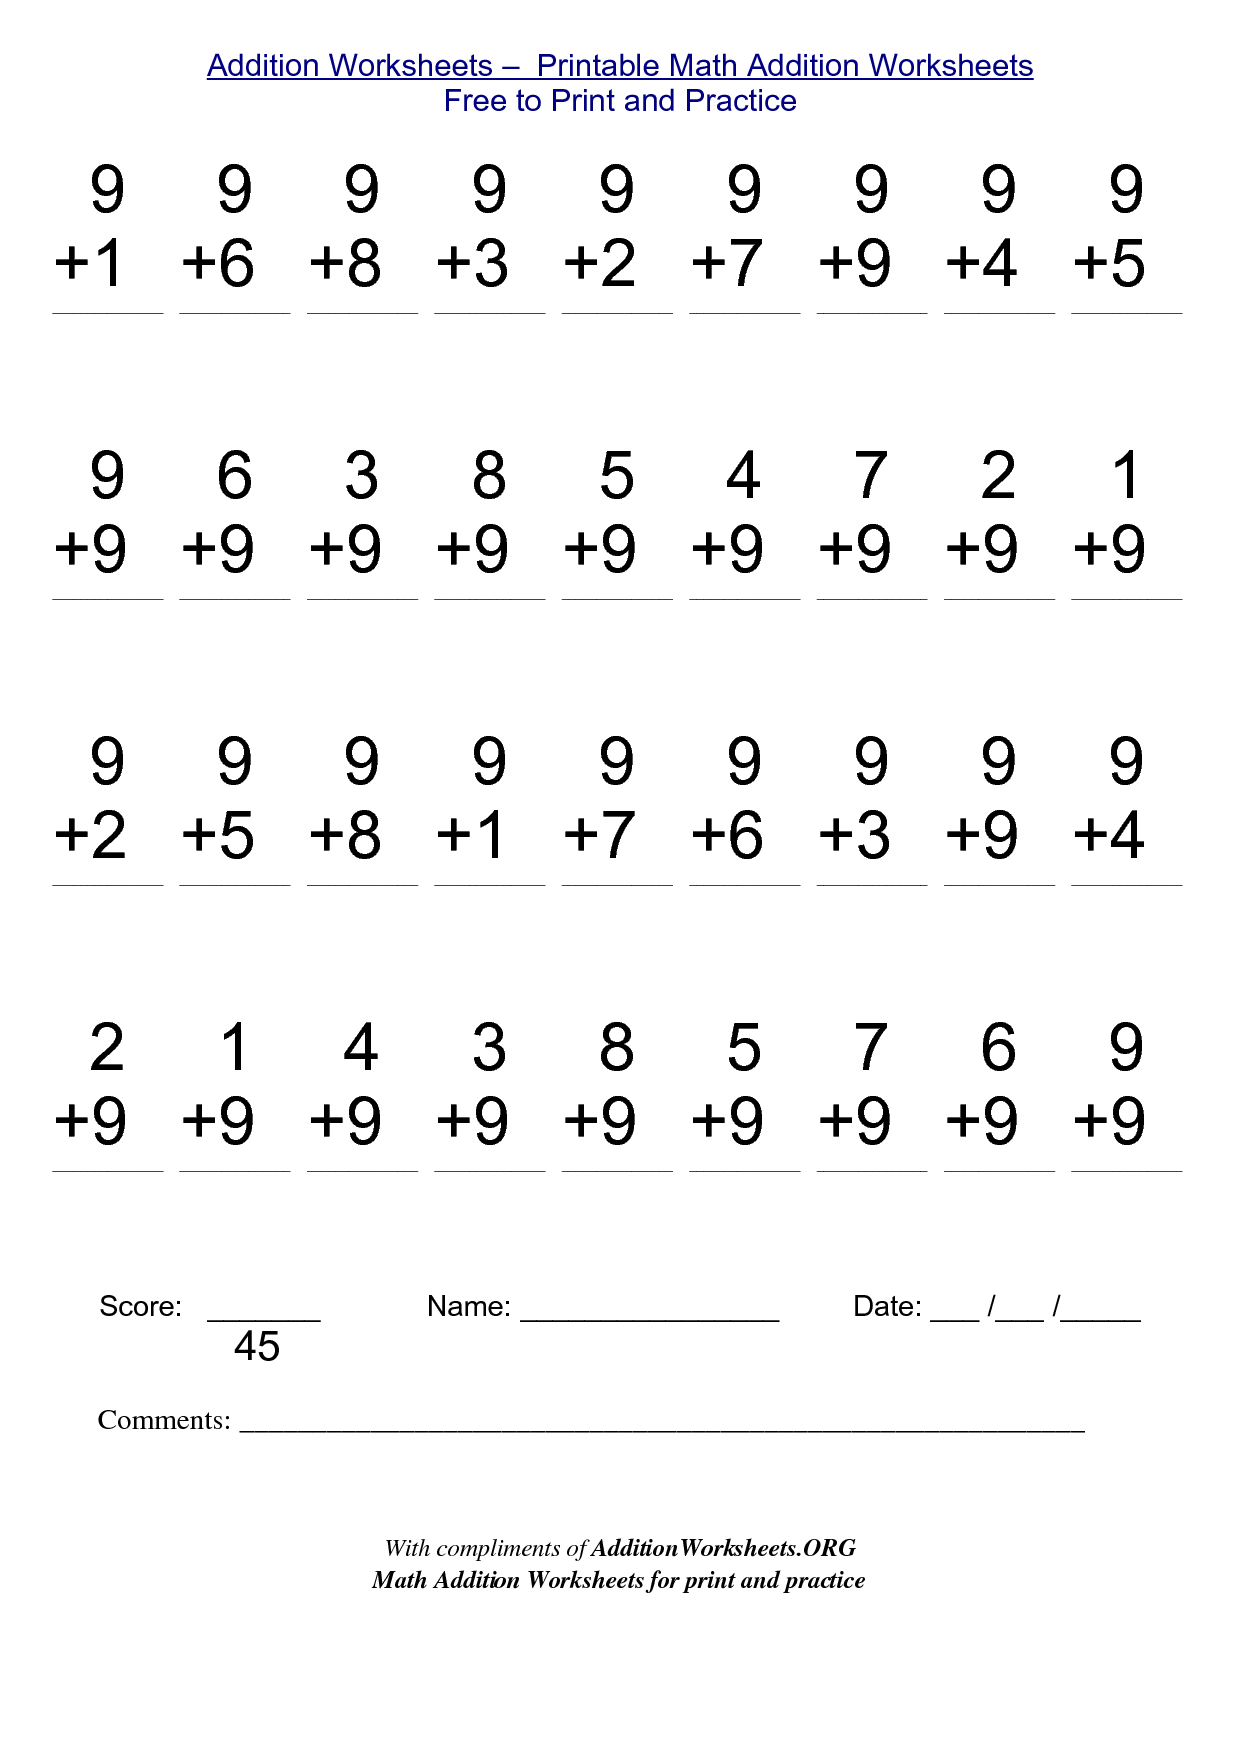 Math Worksheets for Free to Print Alot ME – Printable Math Worksheets for Grade 2